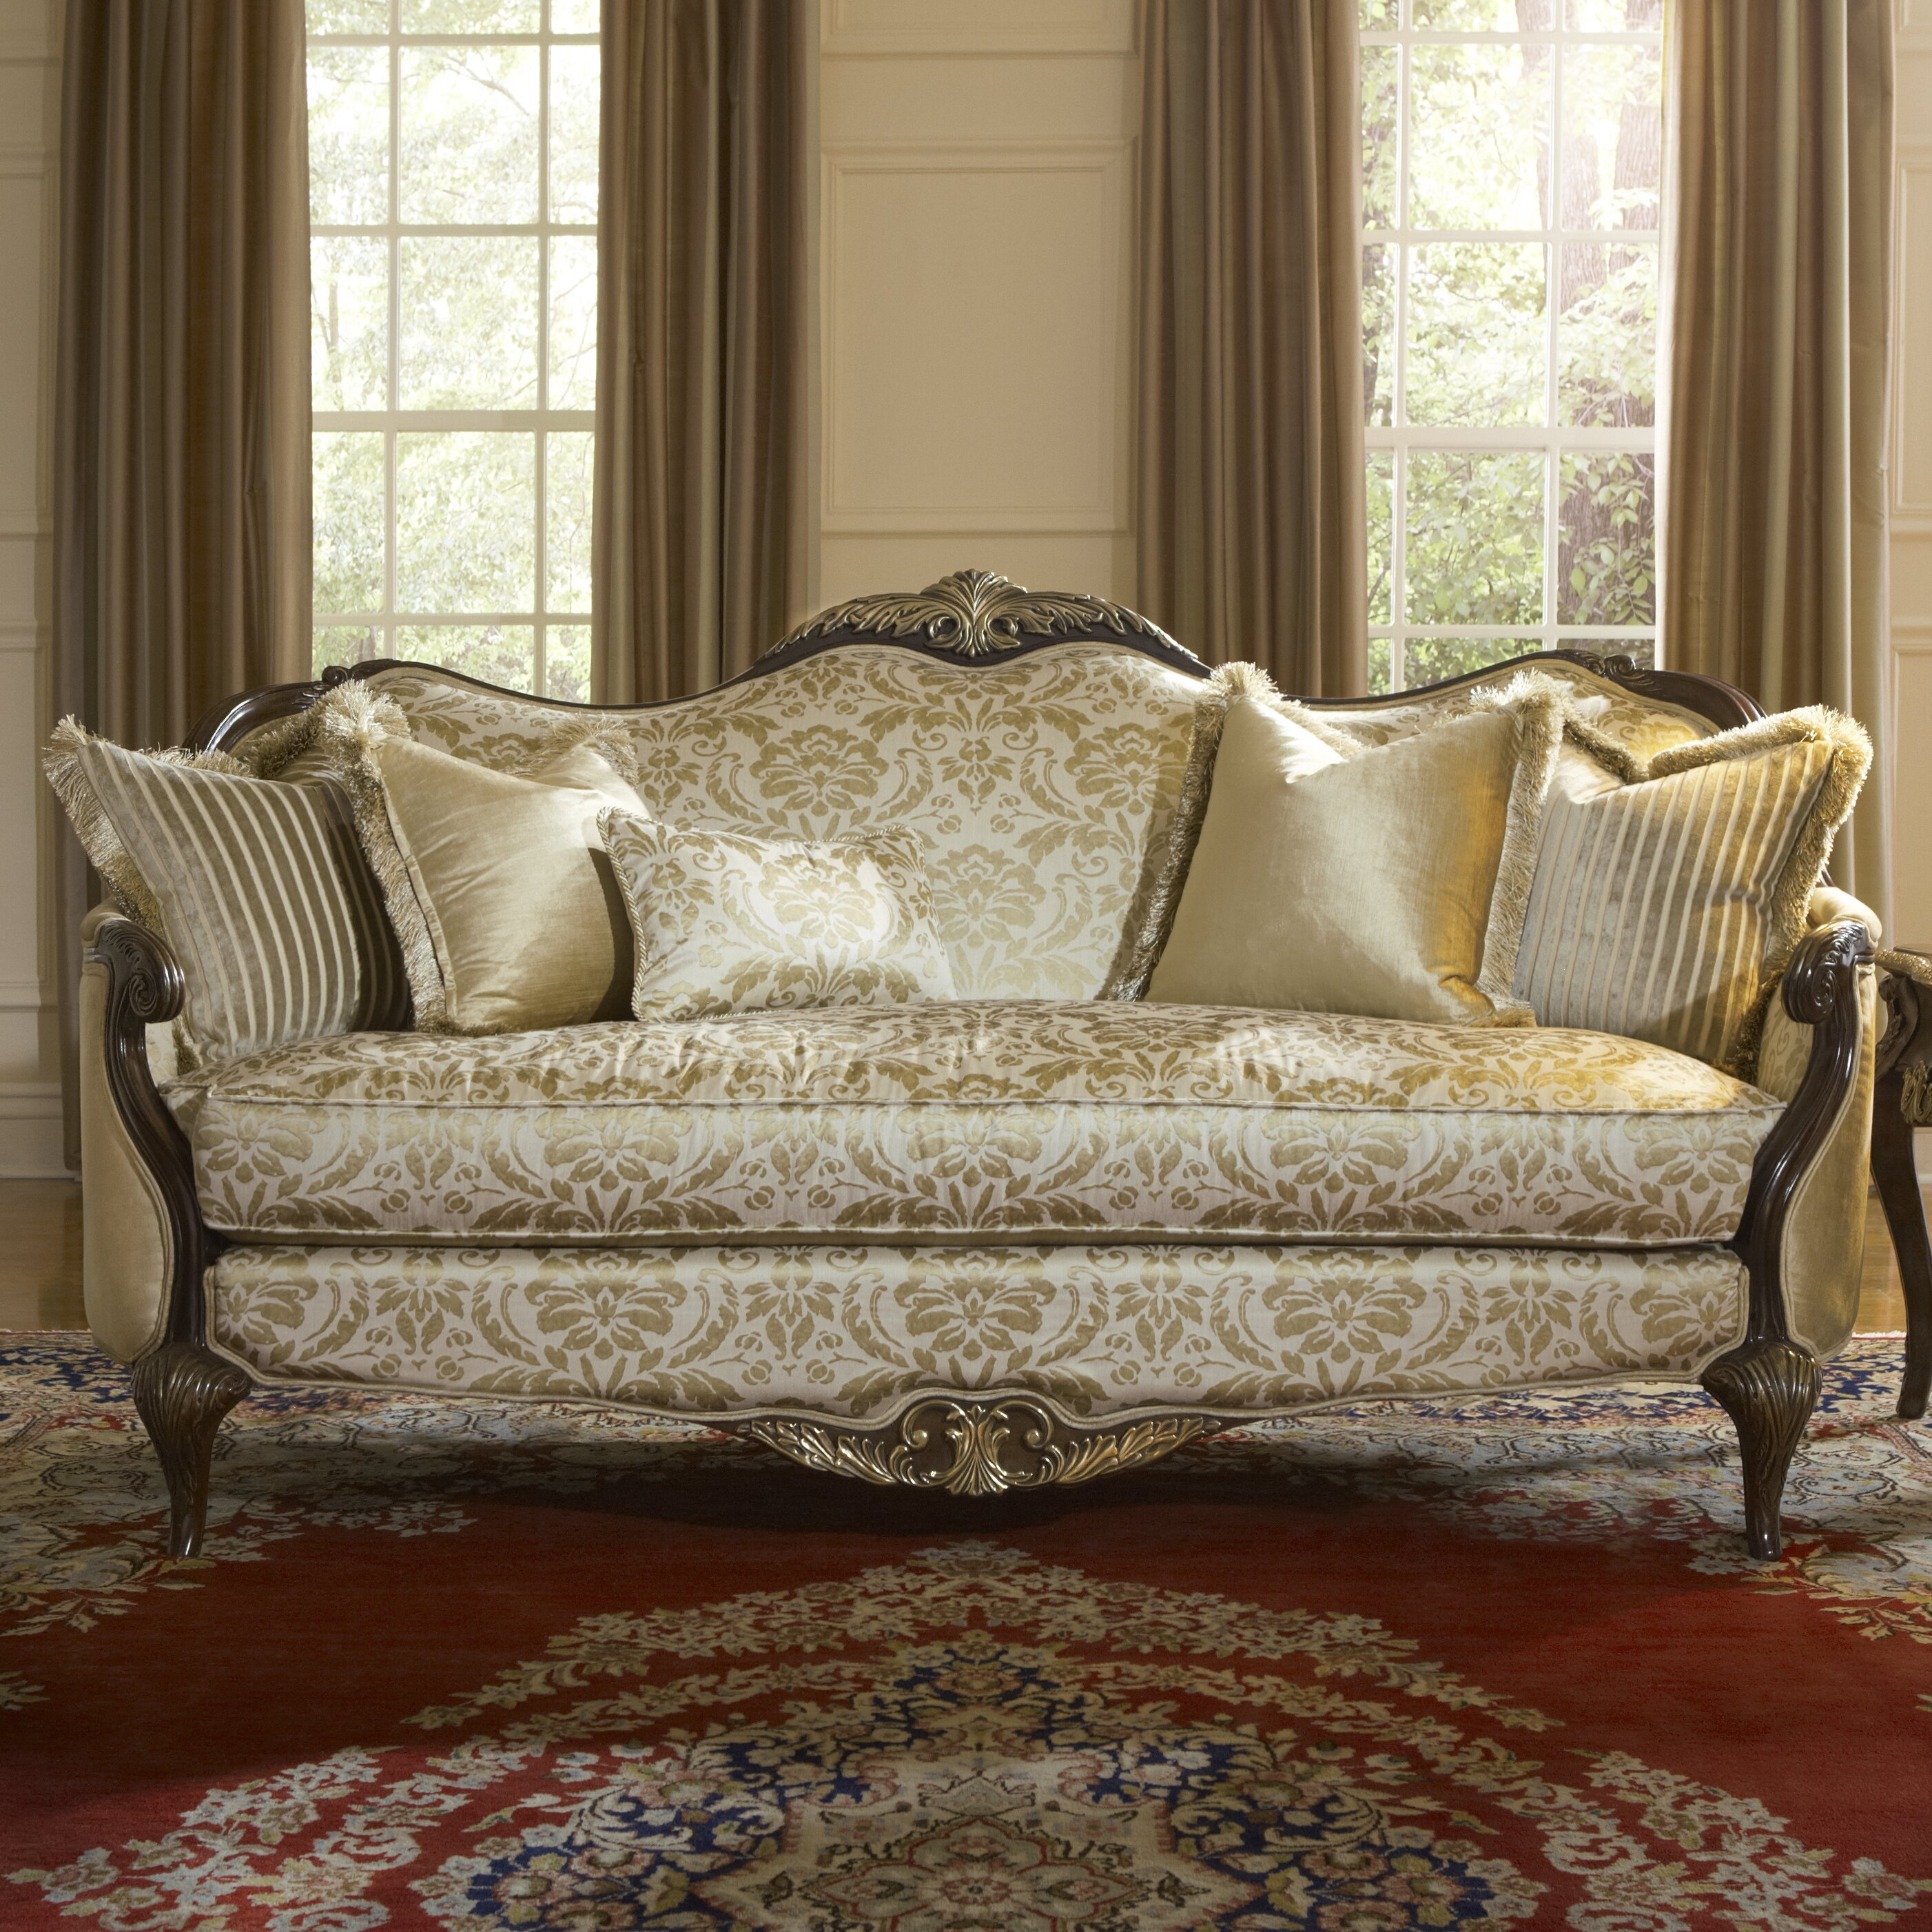 Wayfair Com Sales: Michael Amini Imperial Court Living Room Set & Reviews